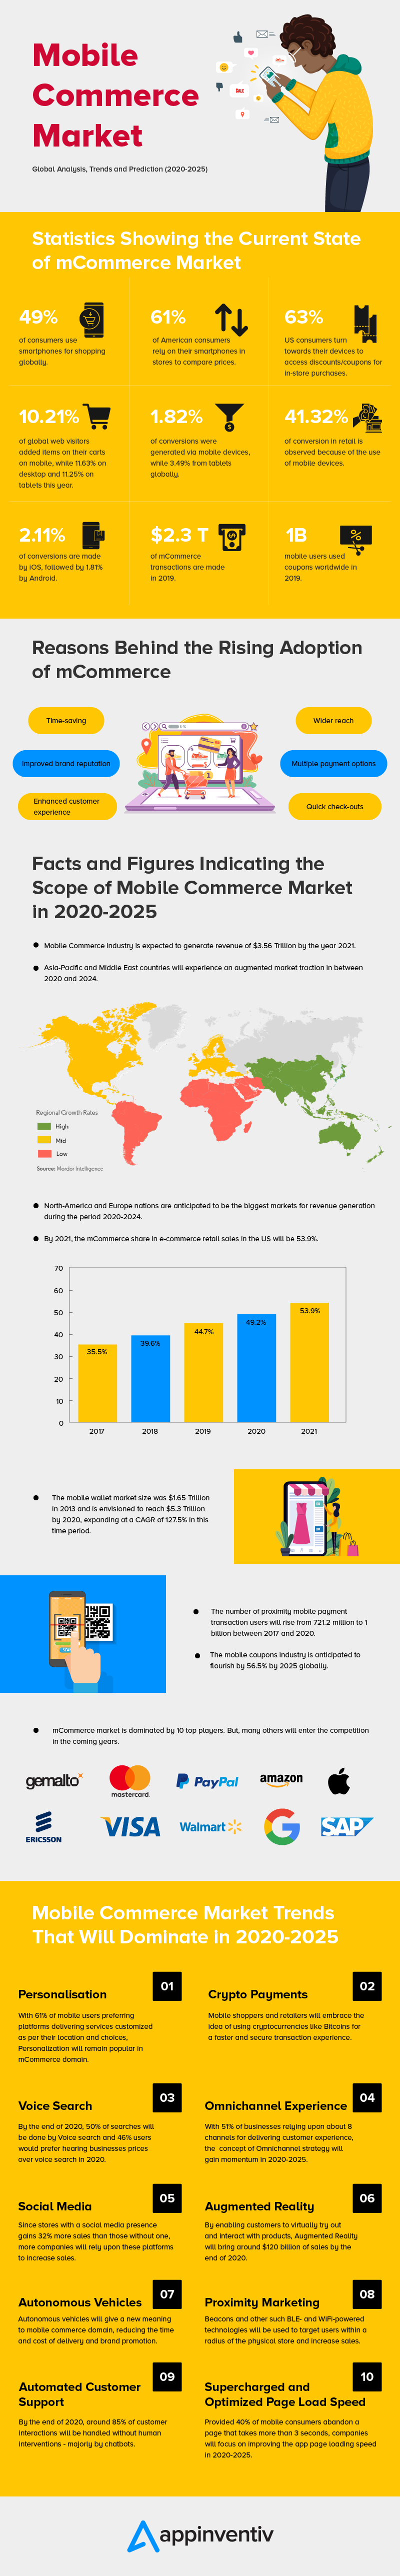 Future of Mobile Commerce: Stats and Trends to Know in 2020-2025